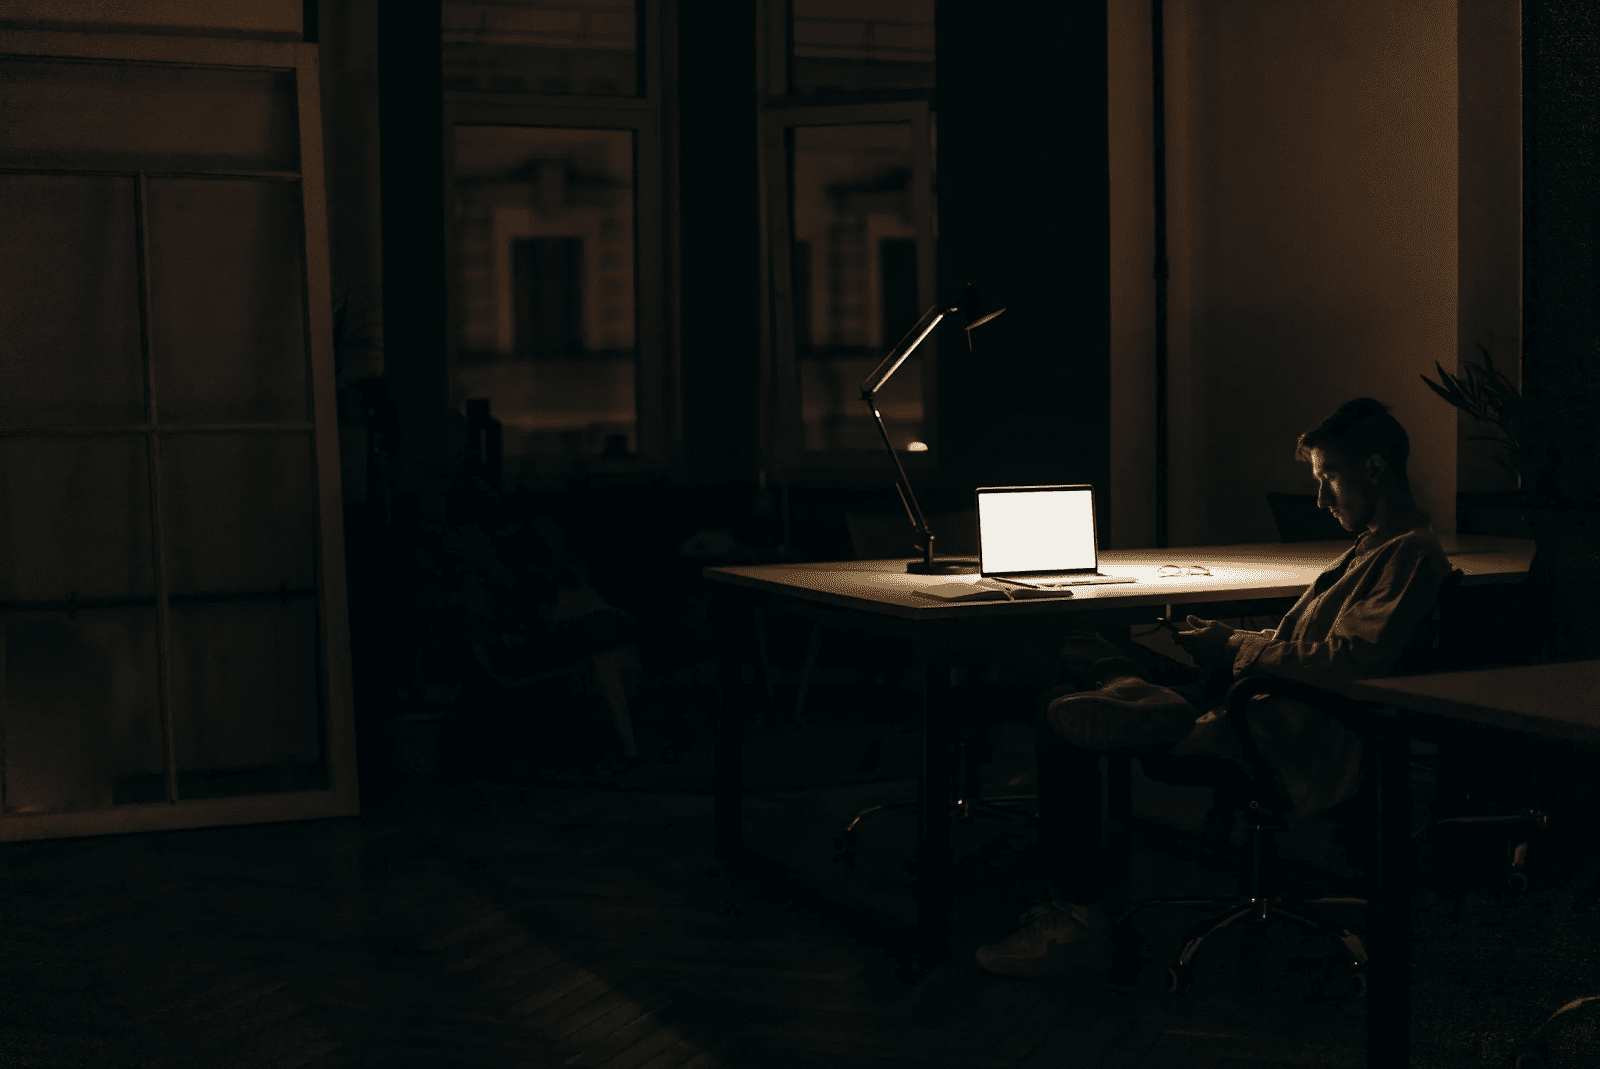 man working from his home office at night as part of a flex schedule